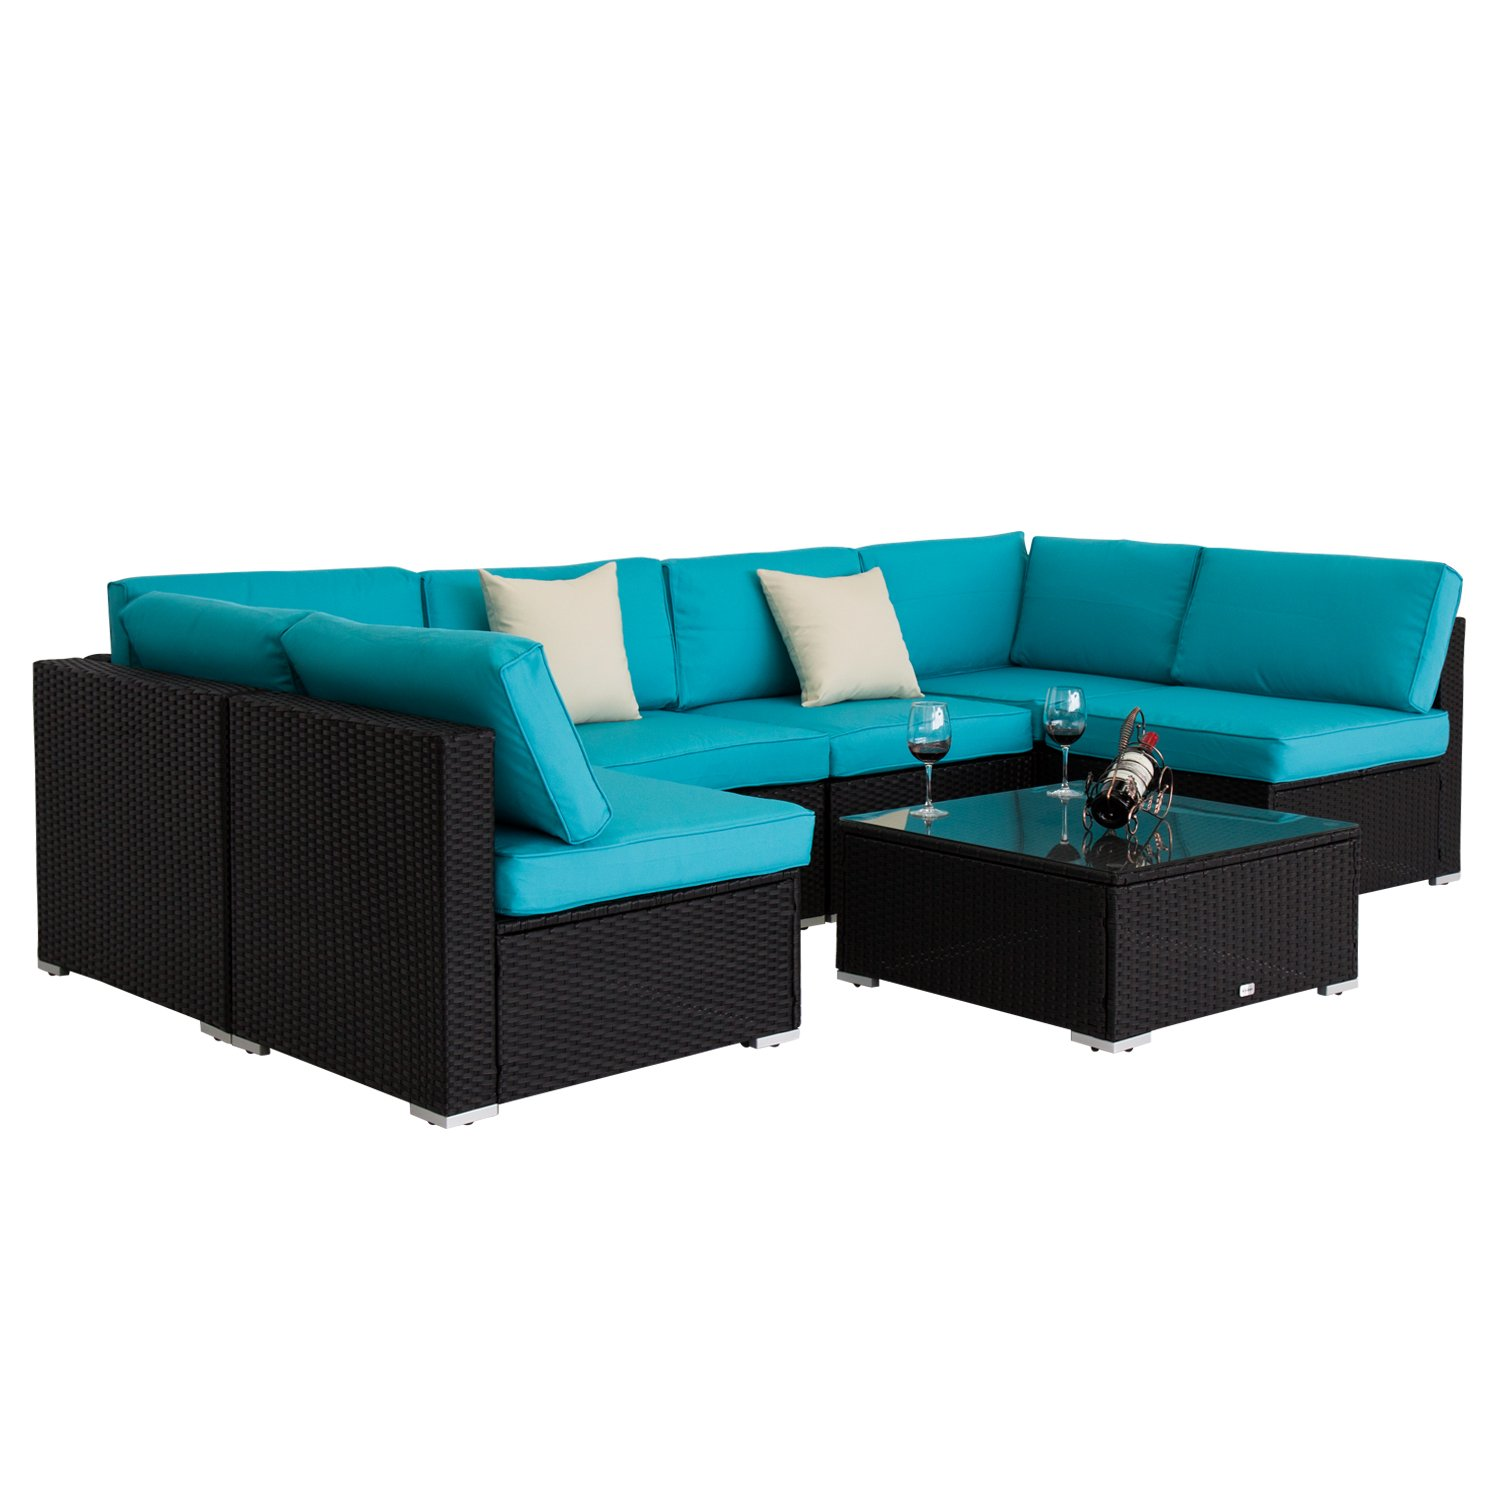 Peach Tree 7 PCs Outdoor Patio PE Rattan Wicker Sofa Sectional Furniture Set With 2 Pillows and Tea Table by Peachtree Press Inc (Image #4)